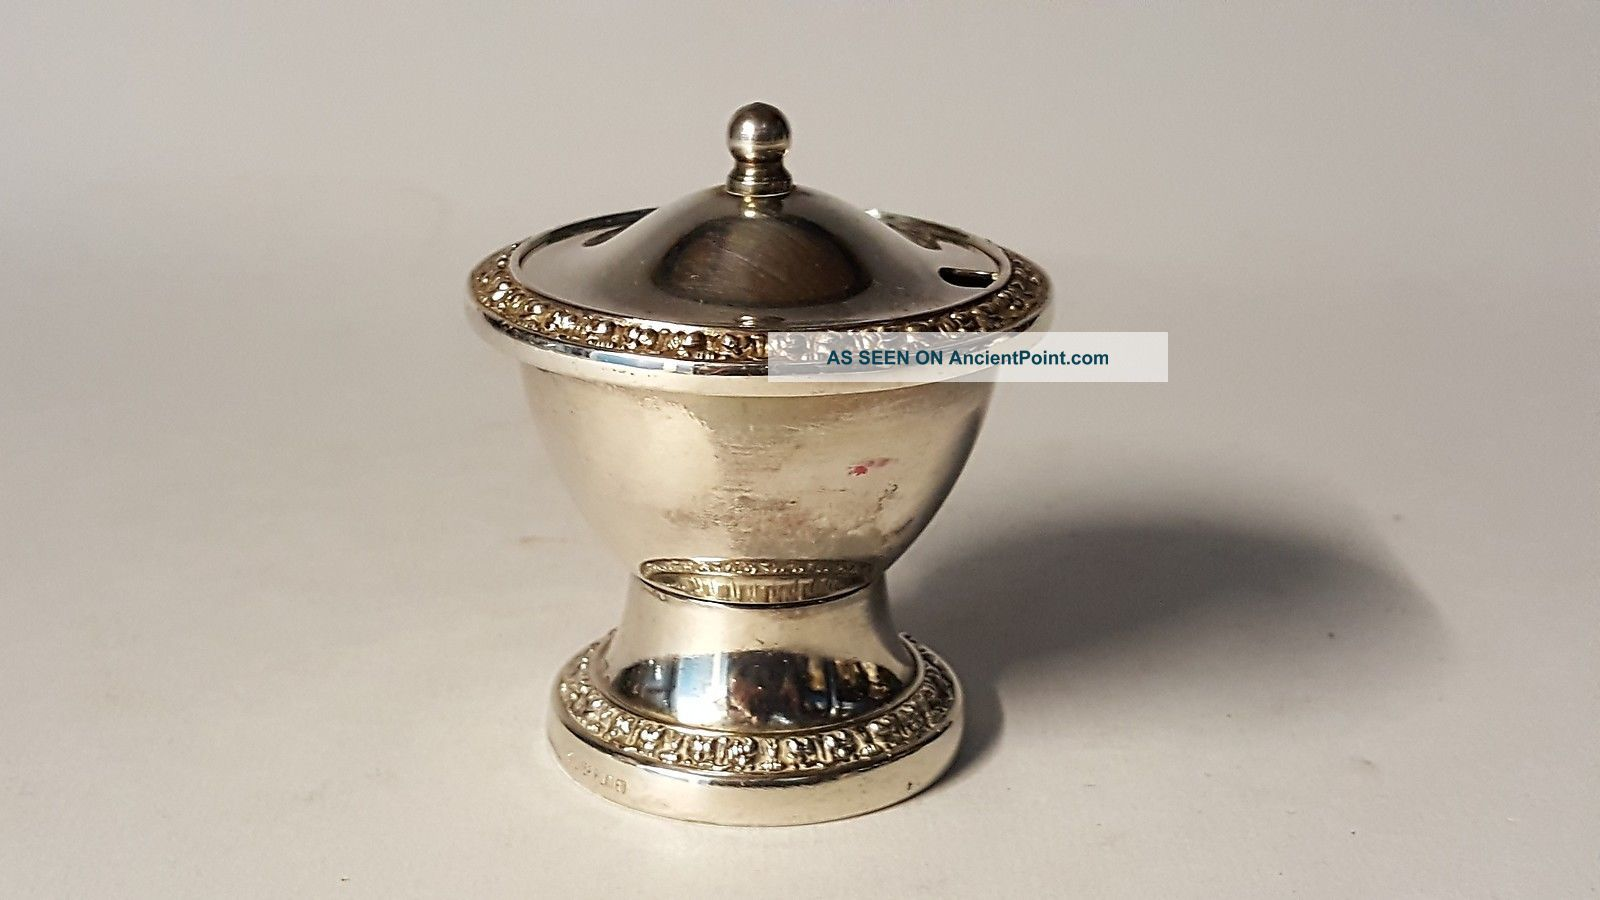 Silver Plate / Electroplate Vintage Art Deco Antique Mustard Pot Dishes & Coasters photo